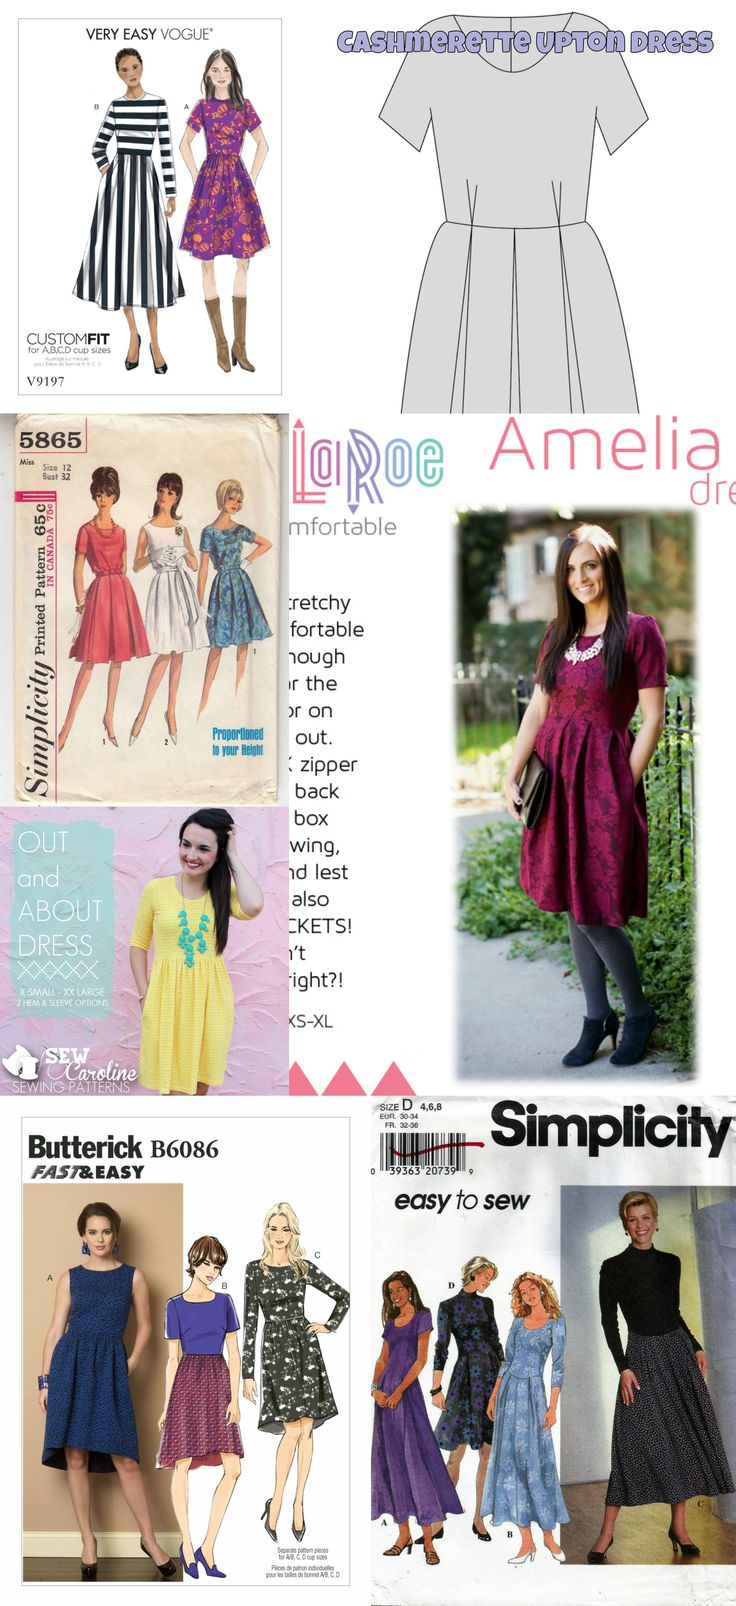 Dupe the Amelia Dress my LuLaRoe! This one is a little harder. You're looking for a Fit and Flare dress, with a full skirt, box pleats and pockets made in a knit. The closest thing will require a little bit of alteration, and thats the Out and About Dress. You'll need to convert the gathers to box pleats.